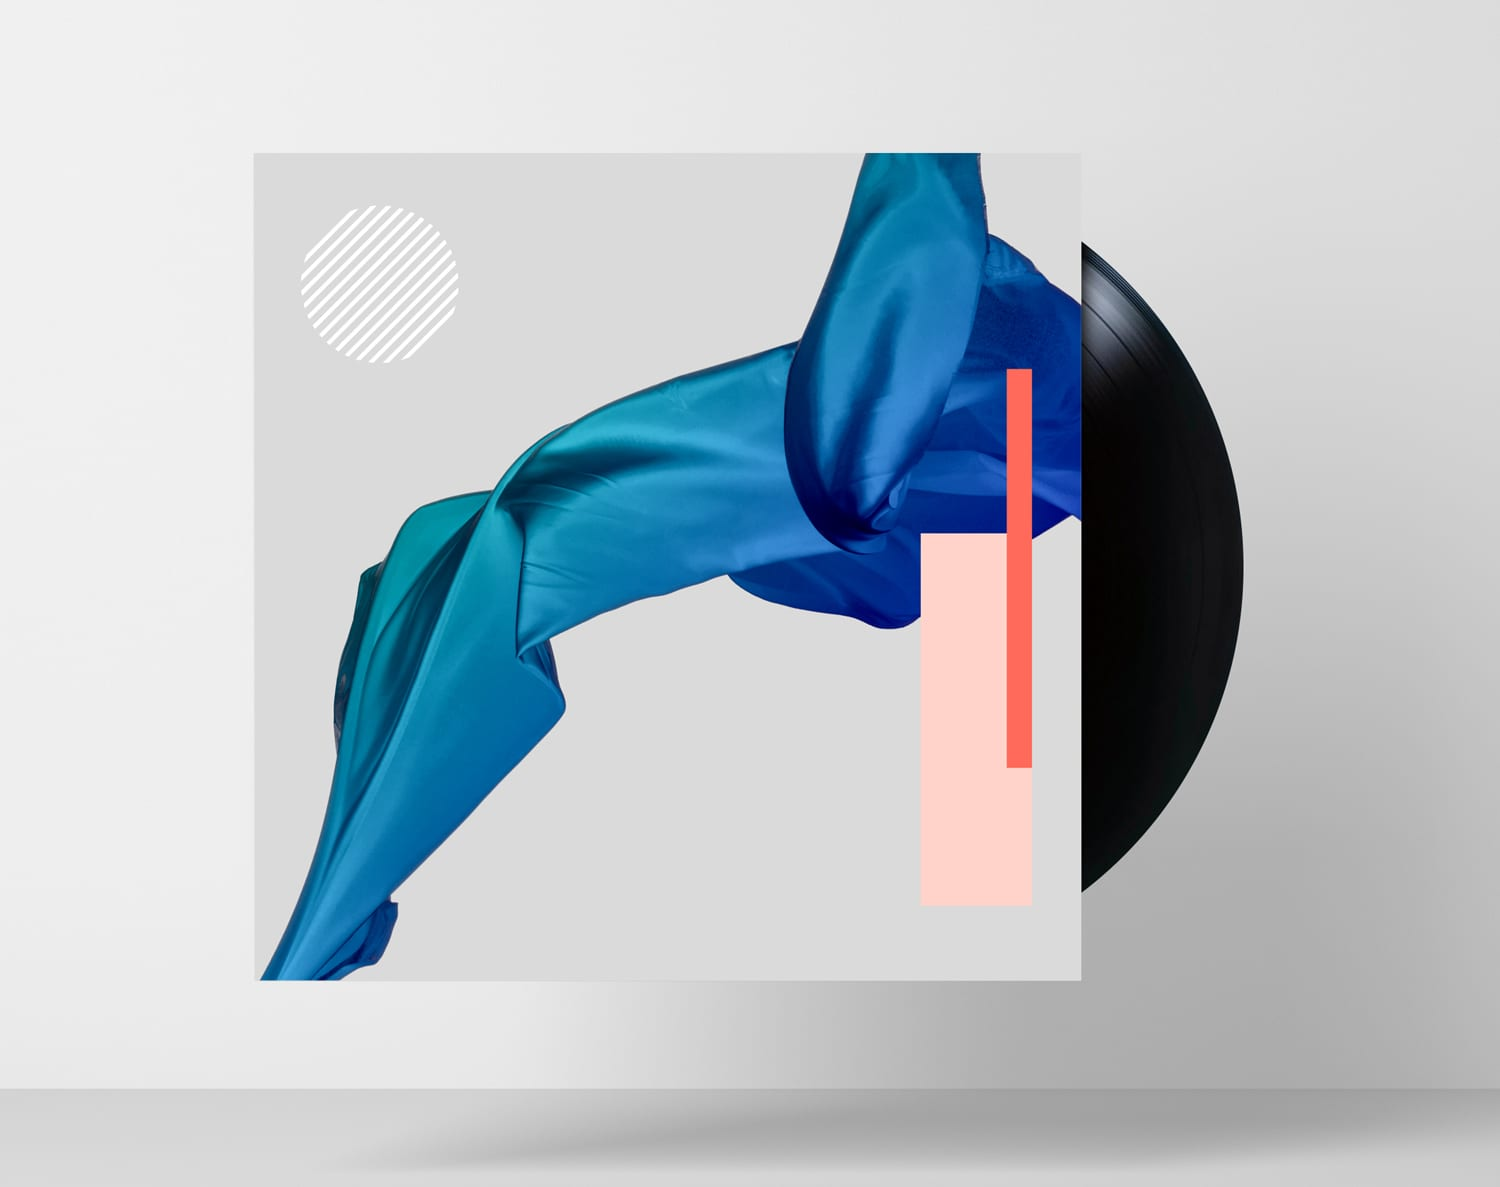 Art Director & Image Maker Anders Brasch-Willumsen | Yellowtrace